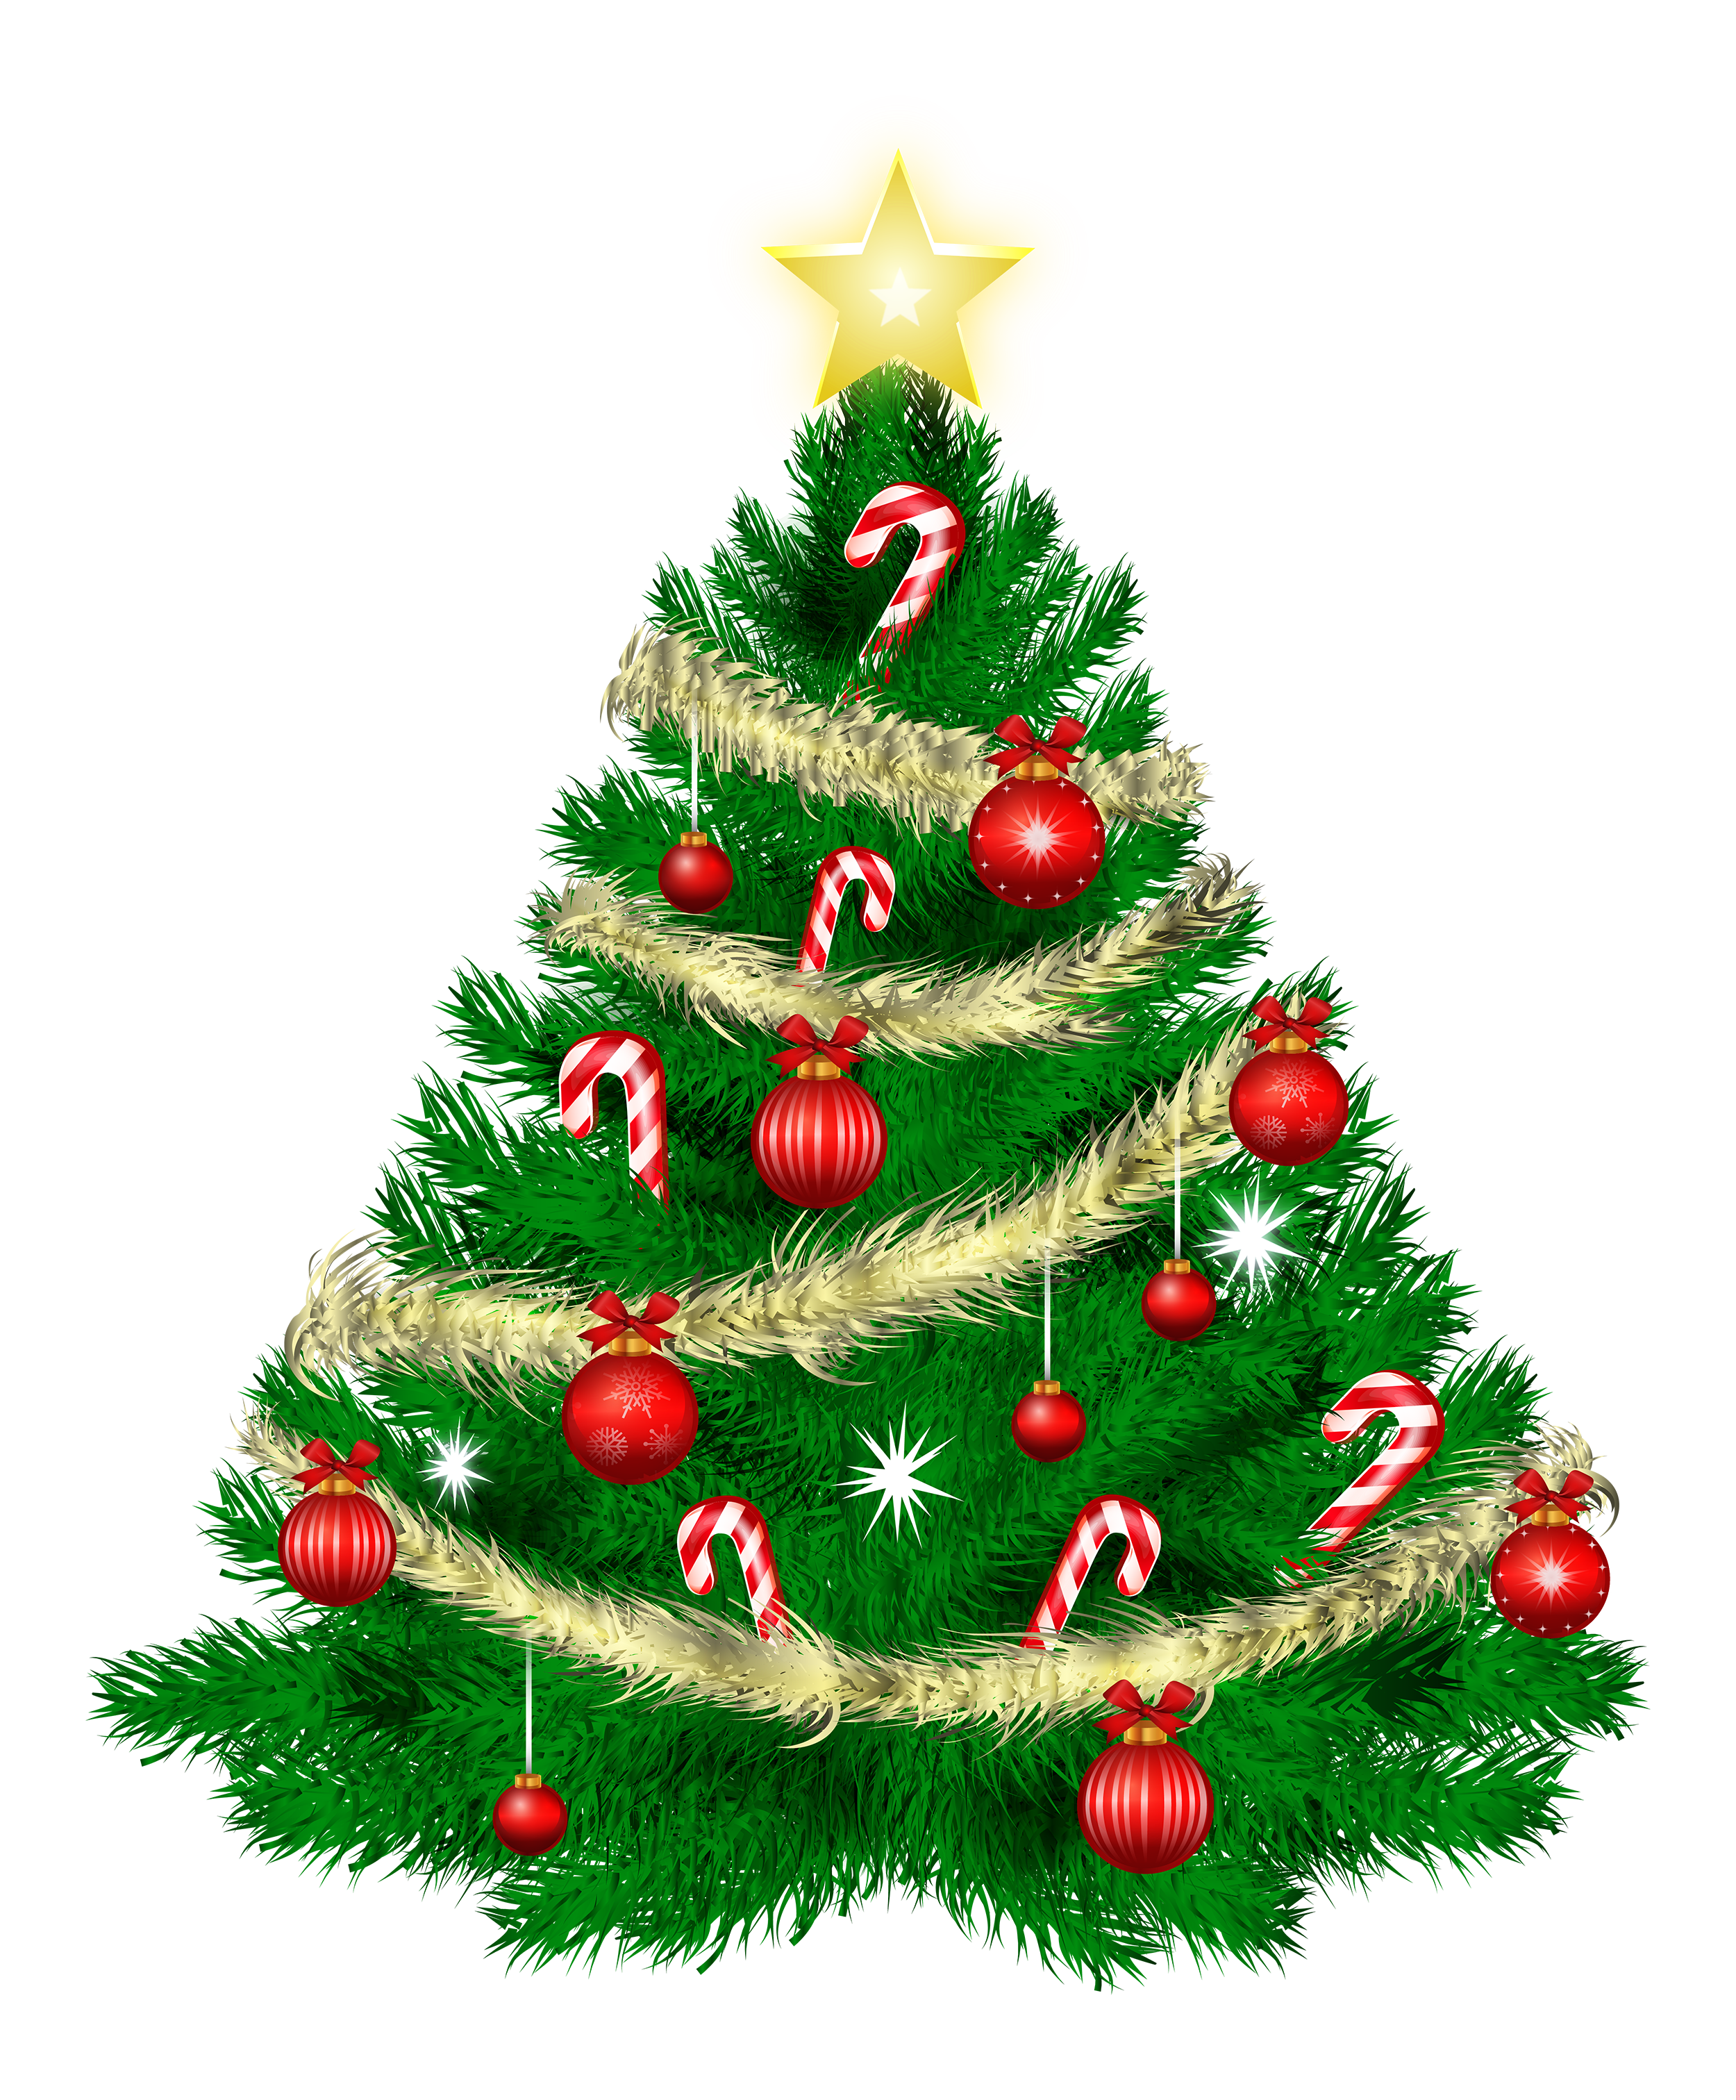 Modern christmas tree clipart graphic royalty free library Christmas clipart transparent png - ClipartFox graphic royalty free library